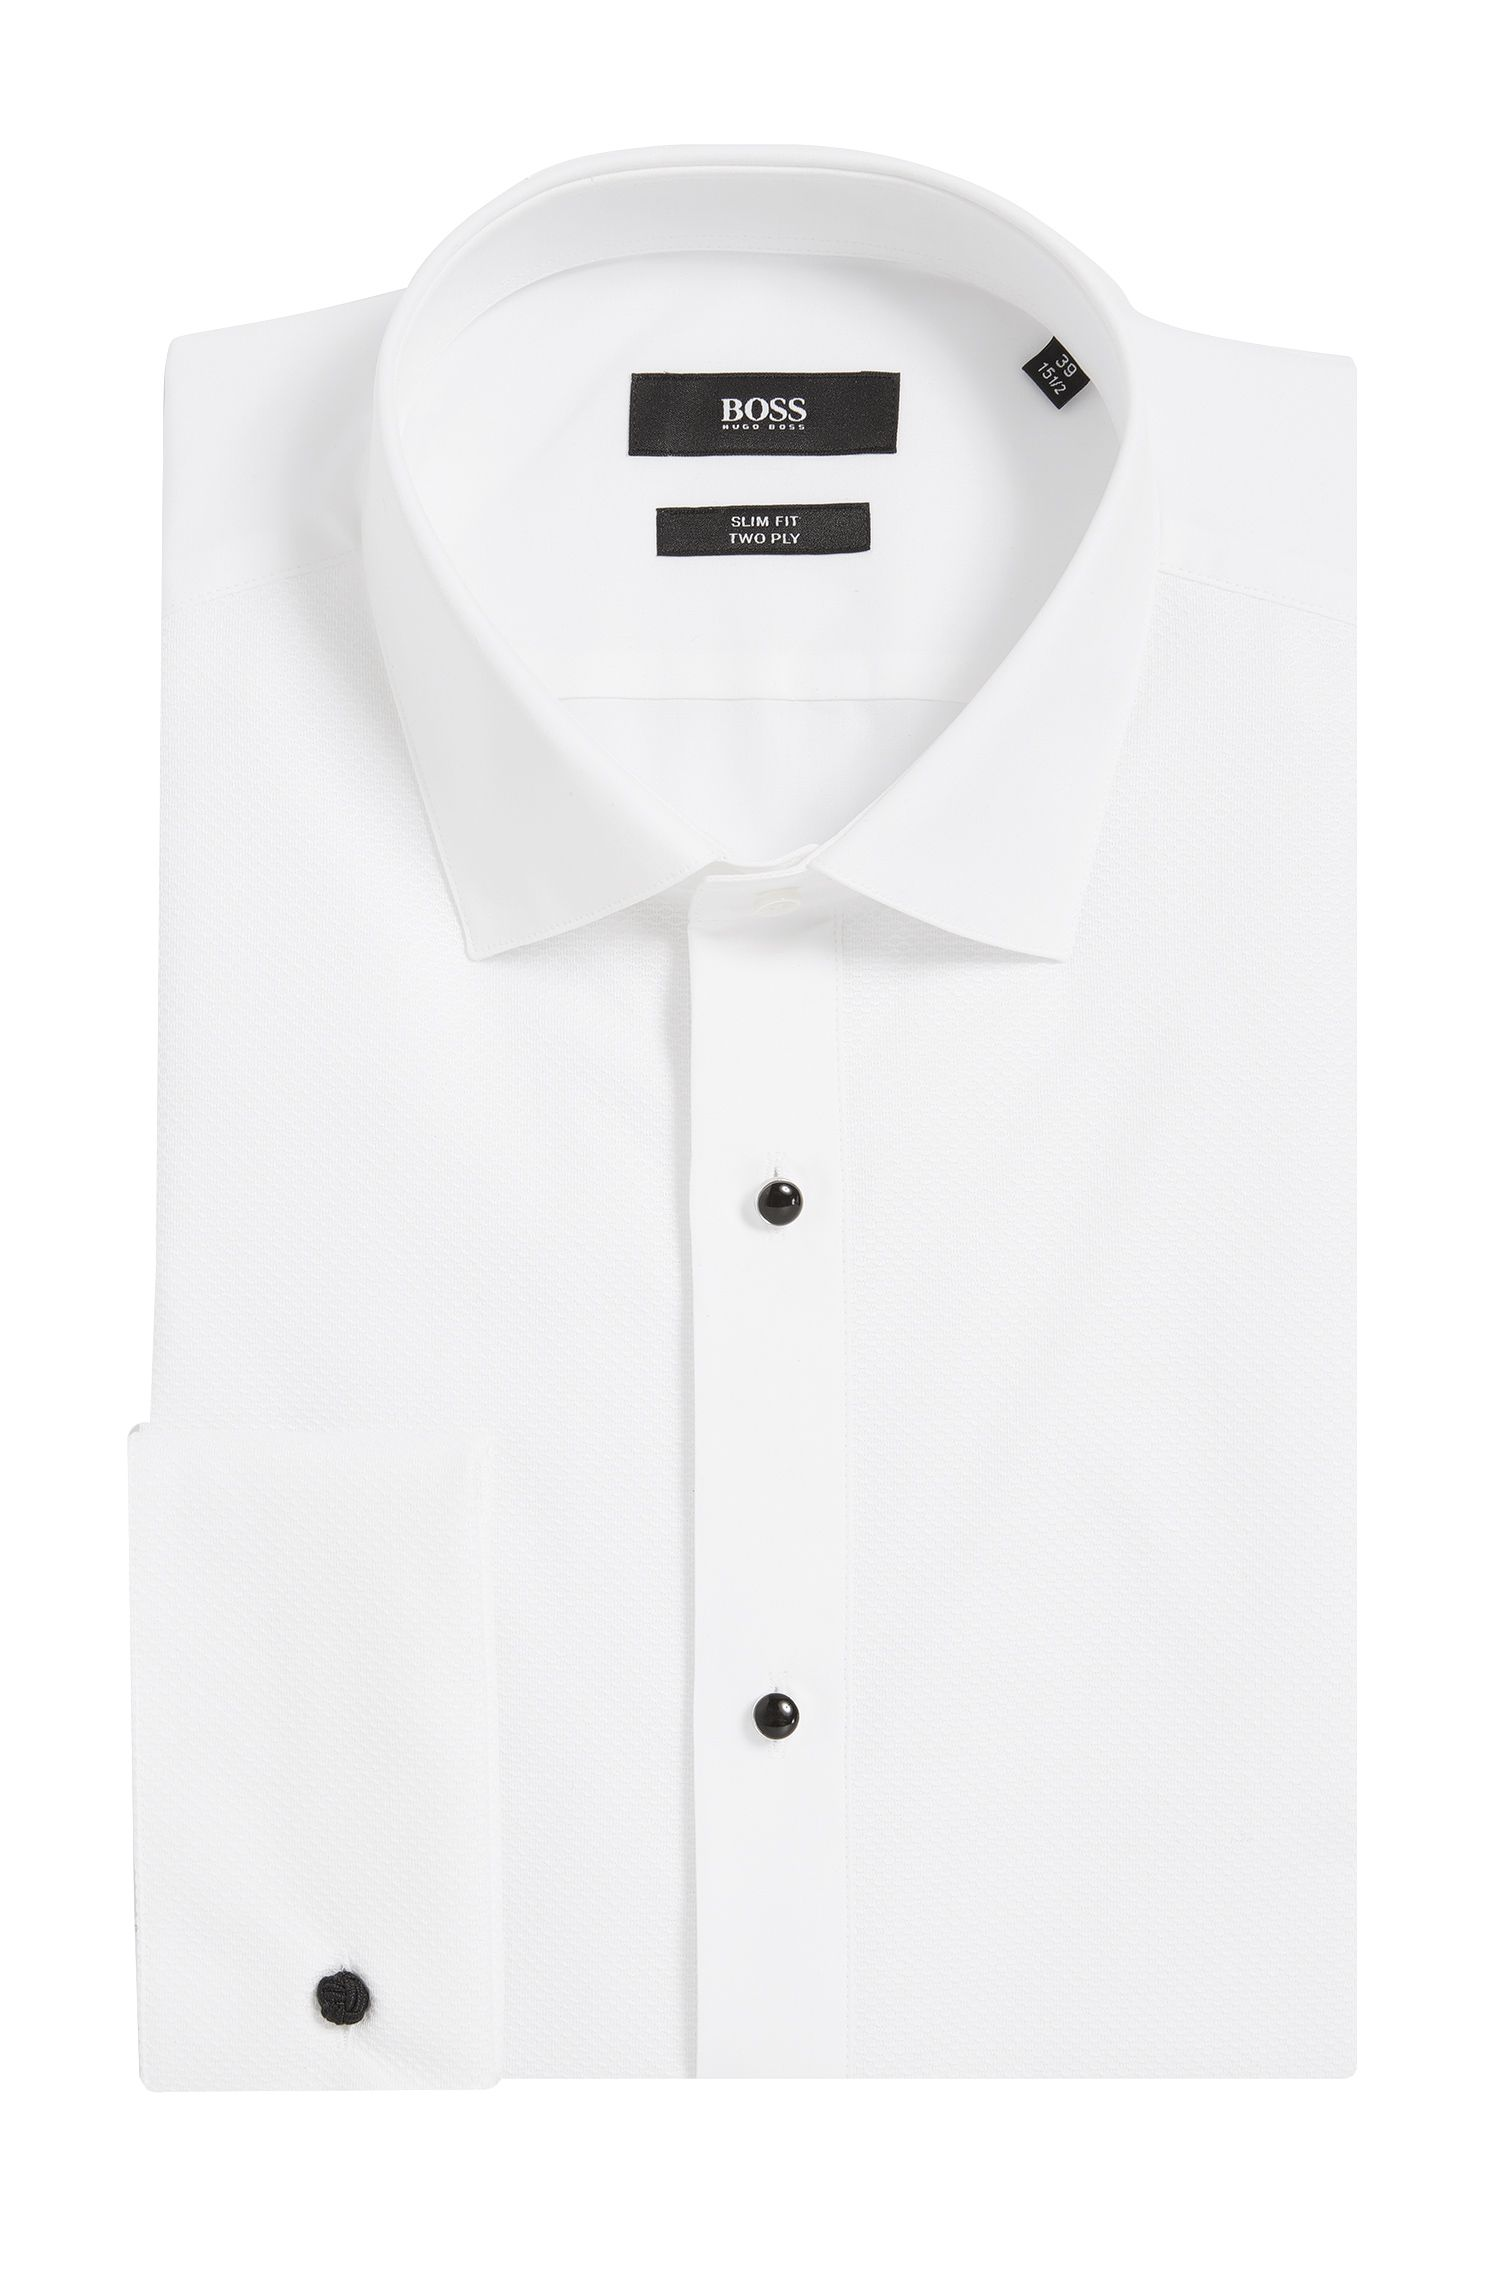 'Jant' | Slim Fit, 2-Ply Cotton French Cuff Dress Shirt